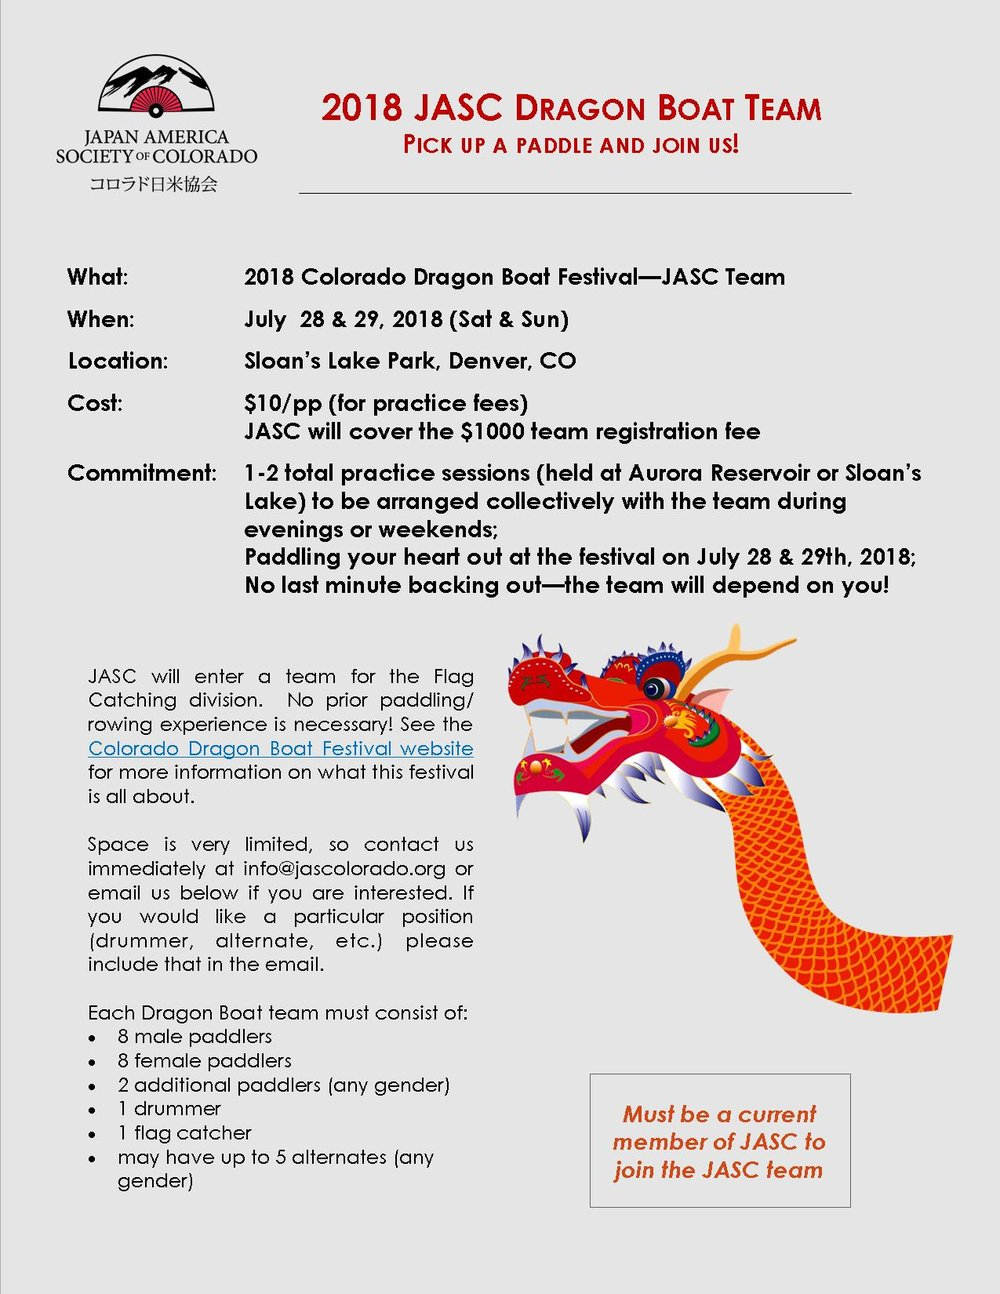 JASC Dragon Boat Team Flyer FINAL.jpg